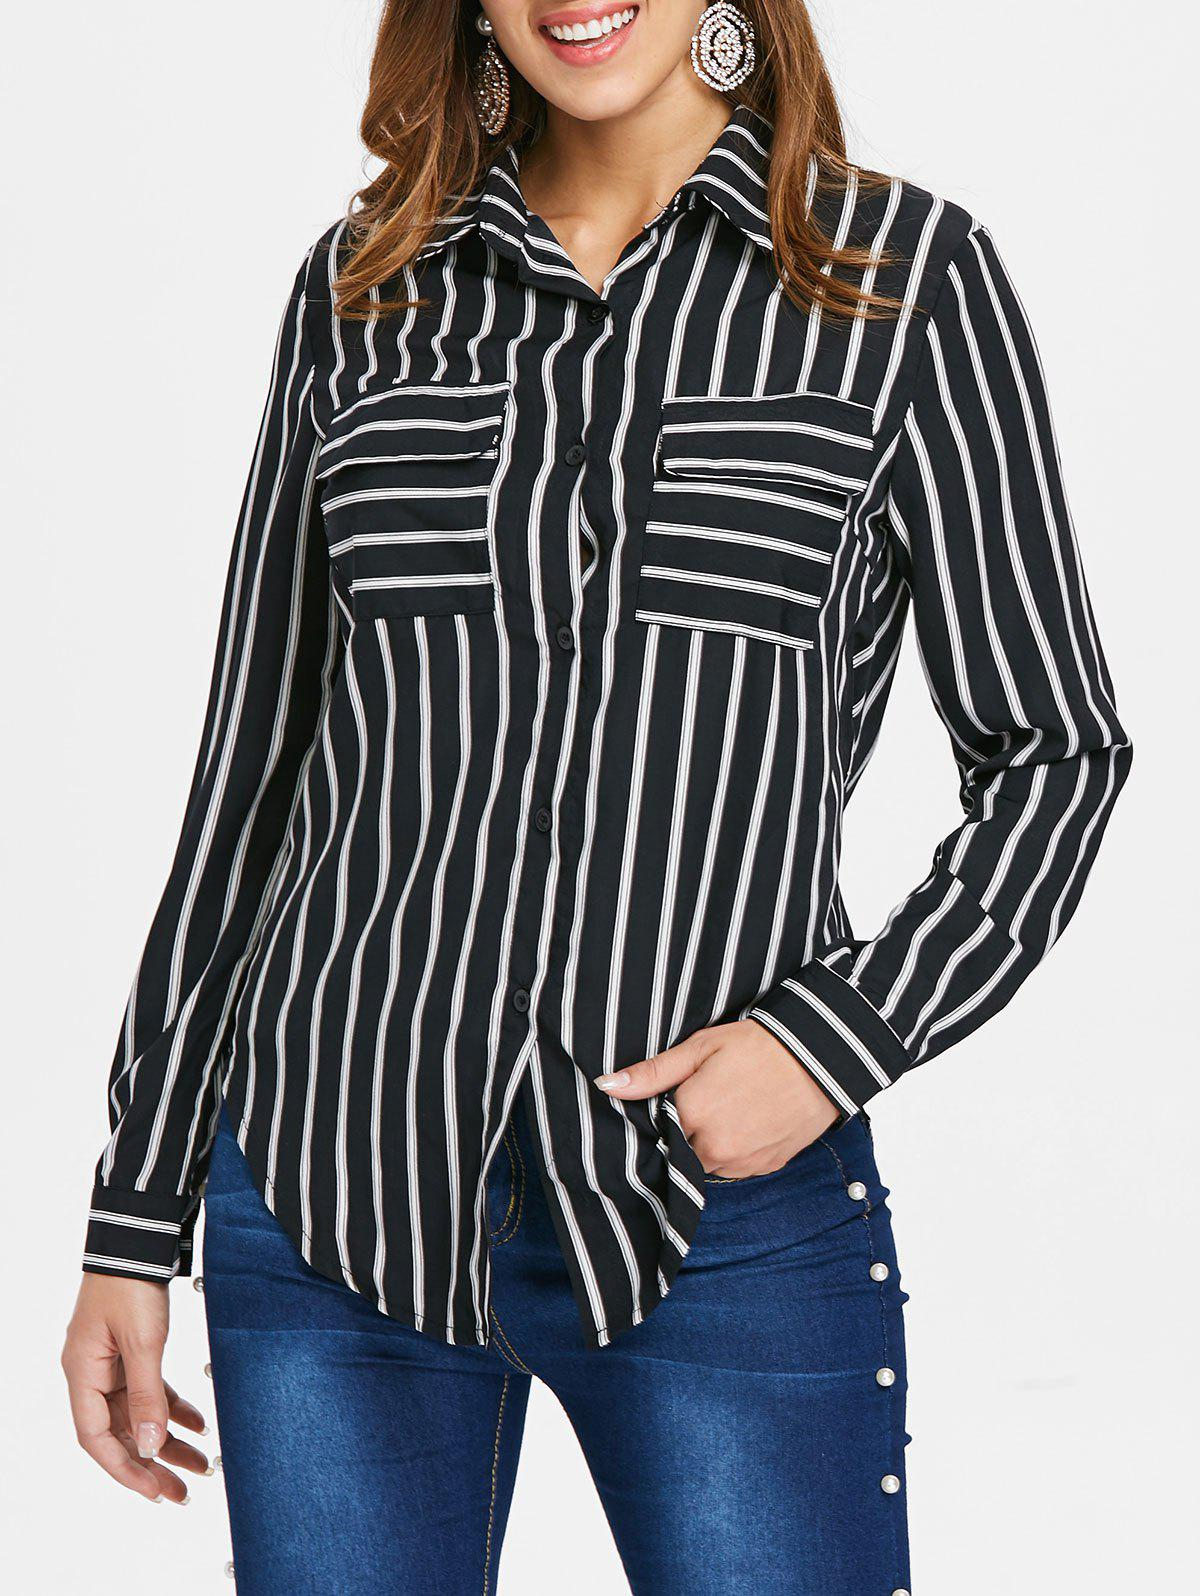 New Striped Front Pockets Shirt